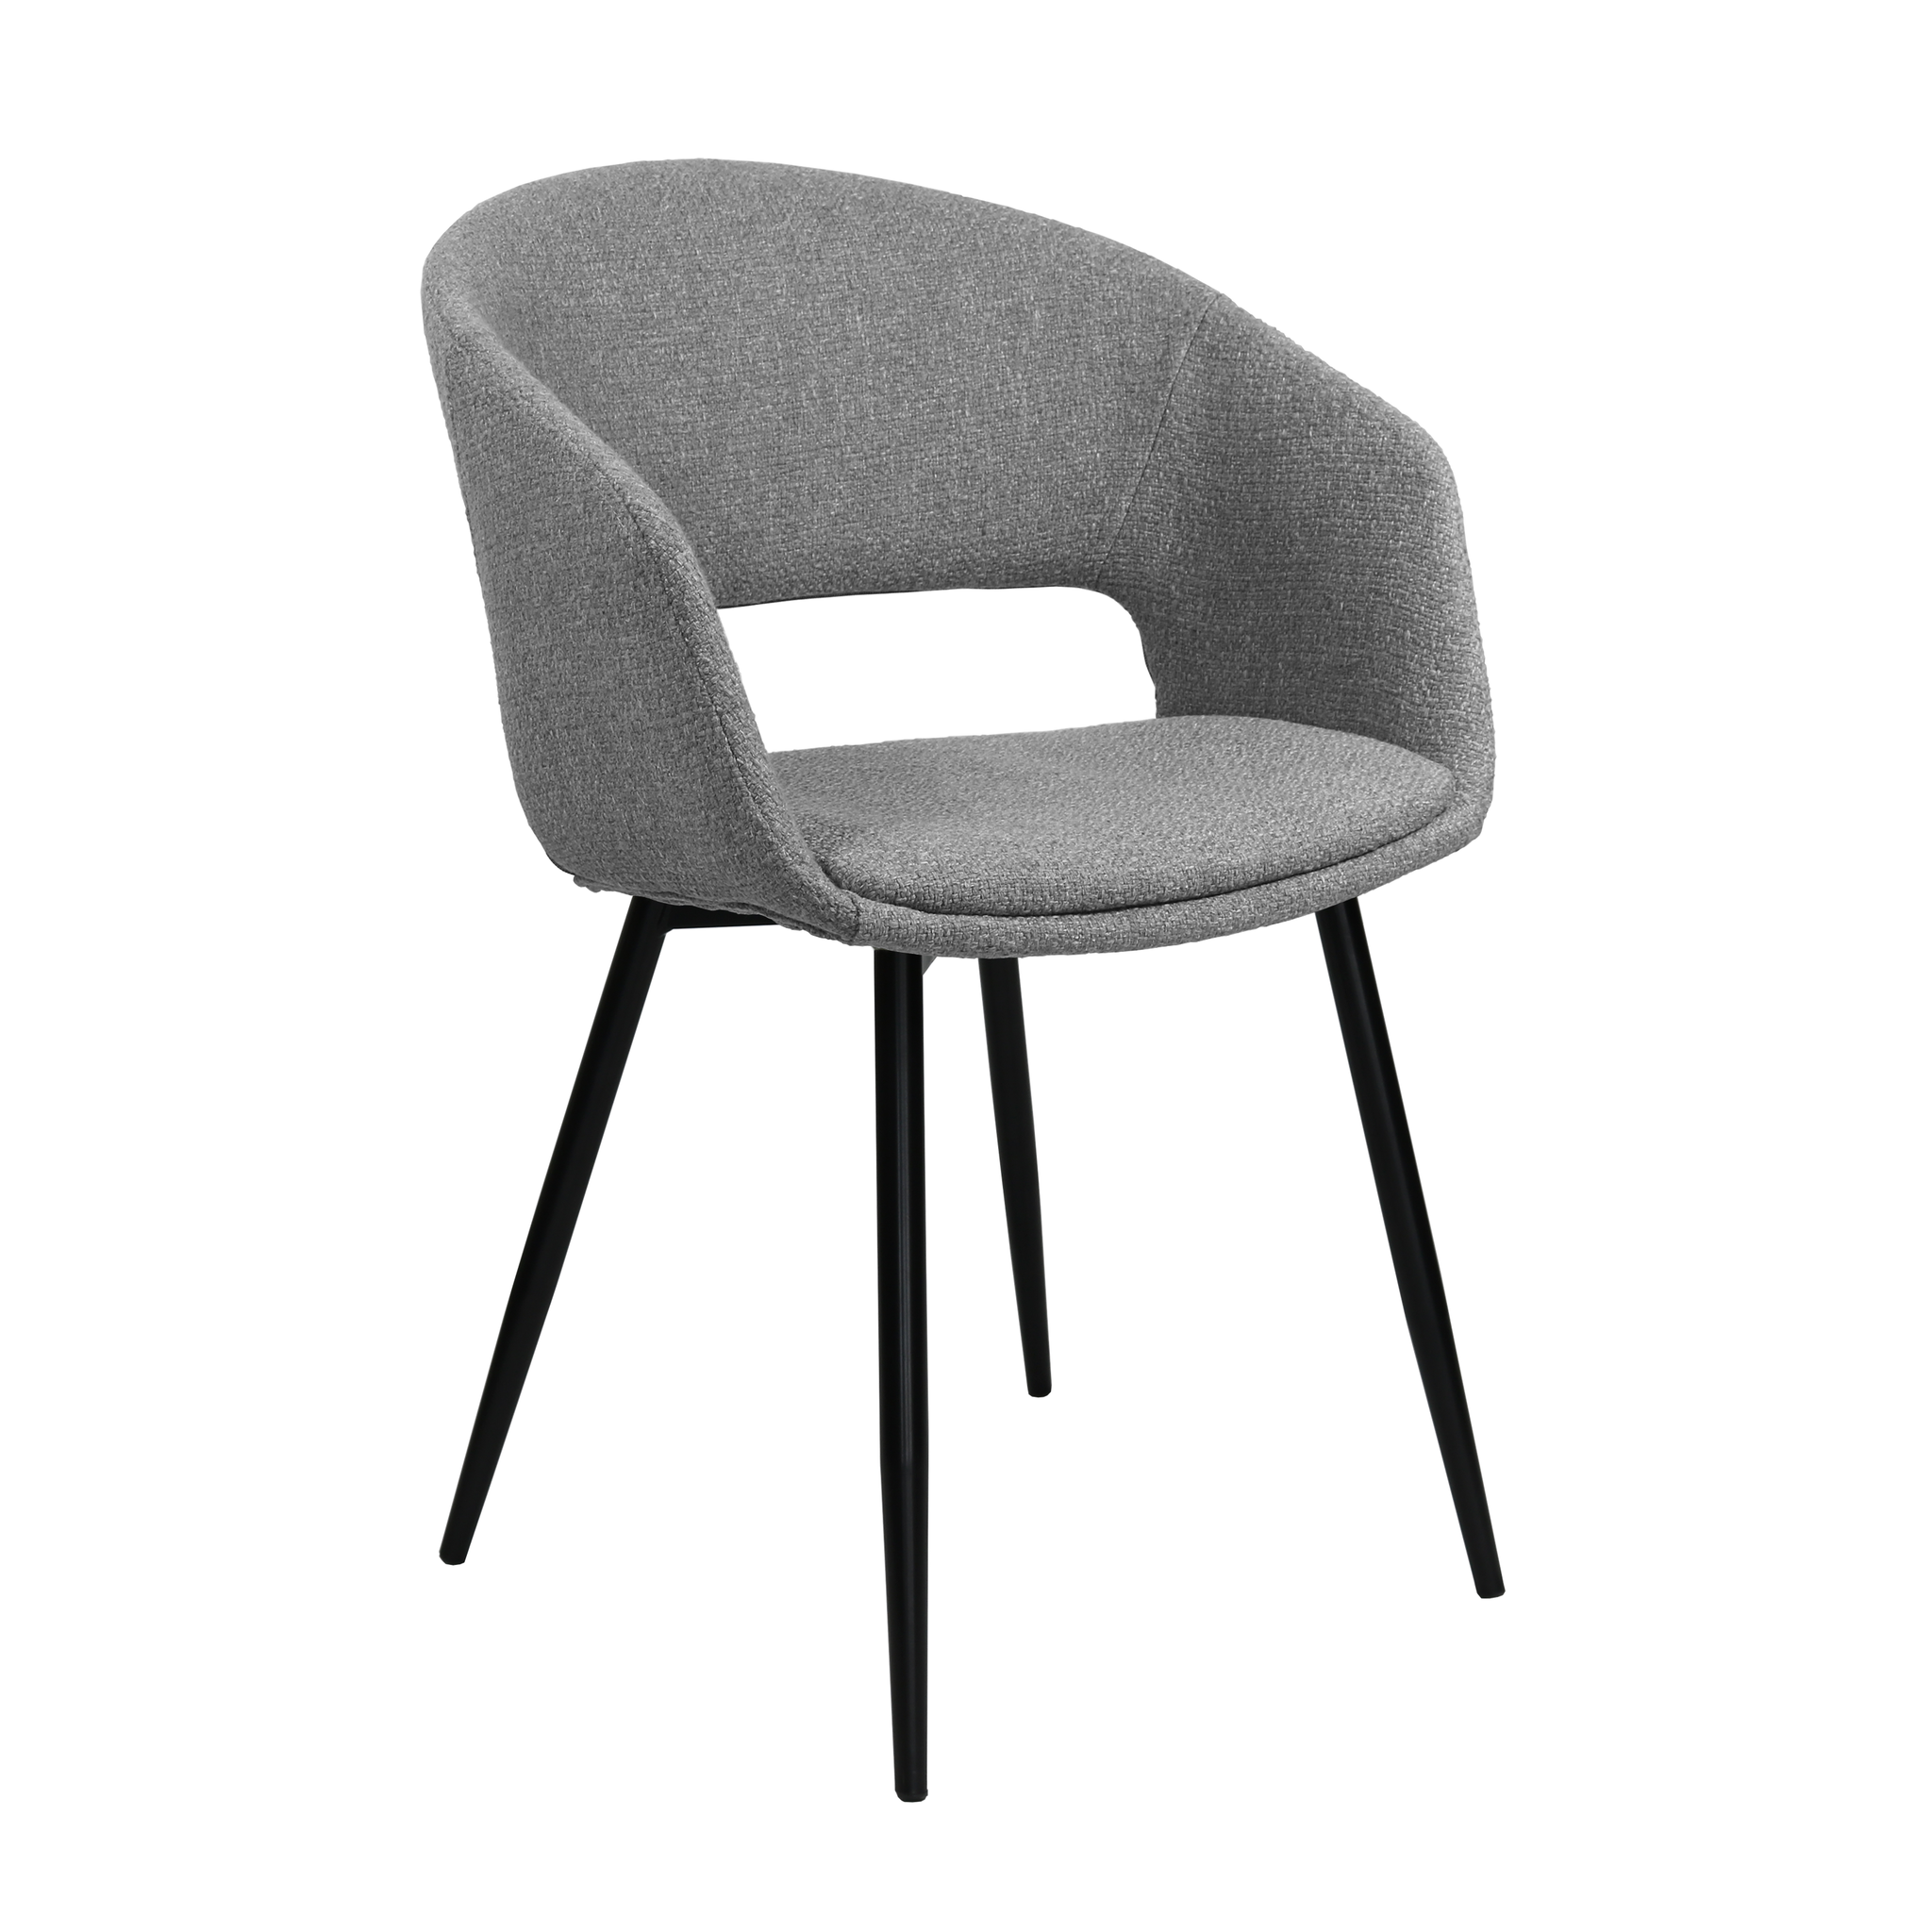 Picture of: Dining Room Chair Open Backrest Metal Frame Gray Sl Homedecoration Com